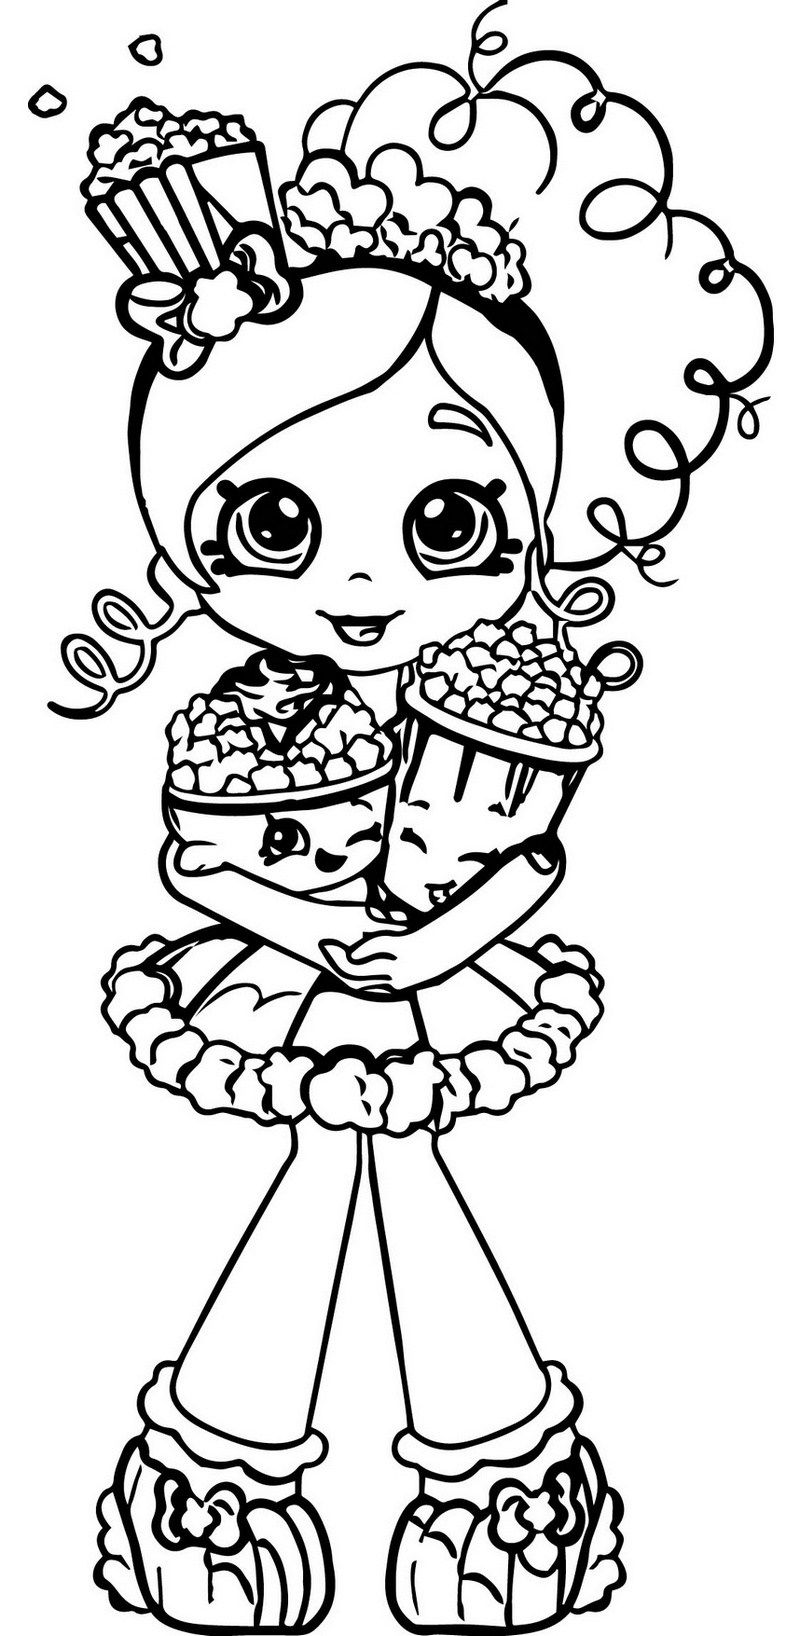 Shopkins Girl Coloring Pages : shopkins, coloring, pages, Coloring, Pages, Girls, Shopkins